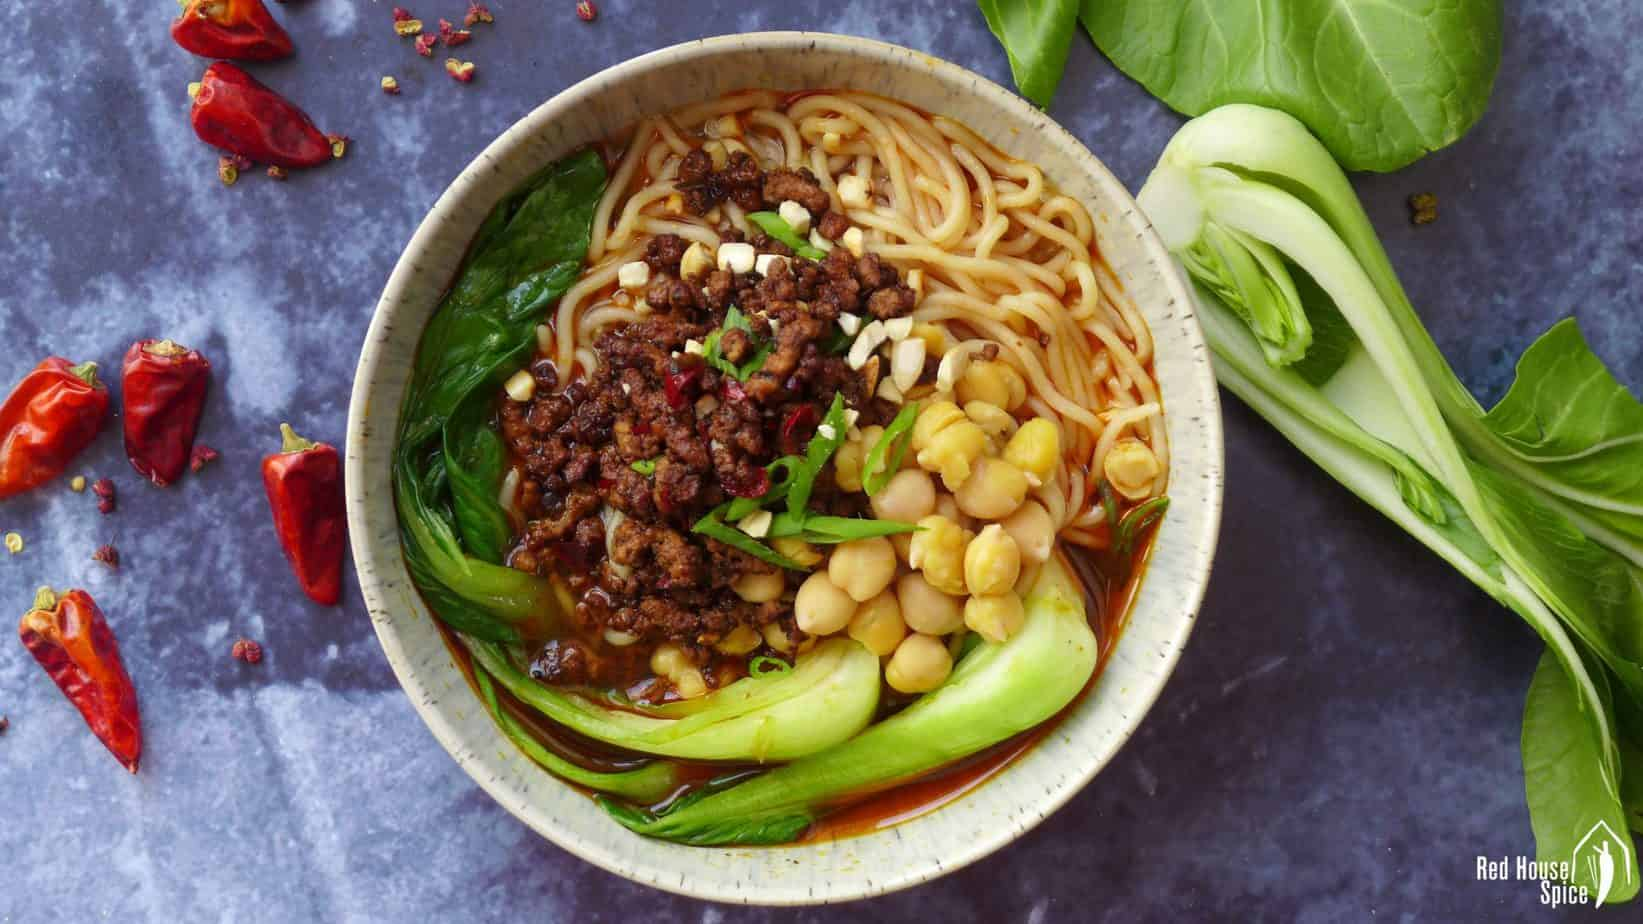 A bowl of Chongqing noodles with minced meat and Bok Choy